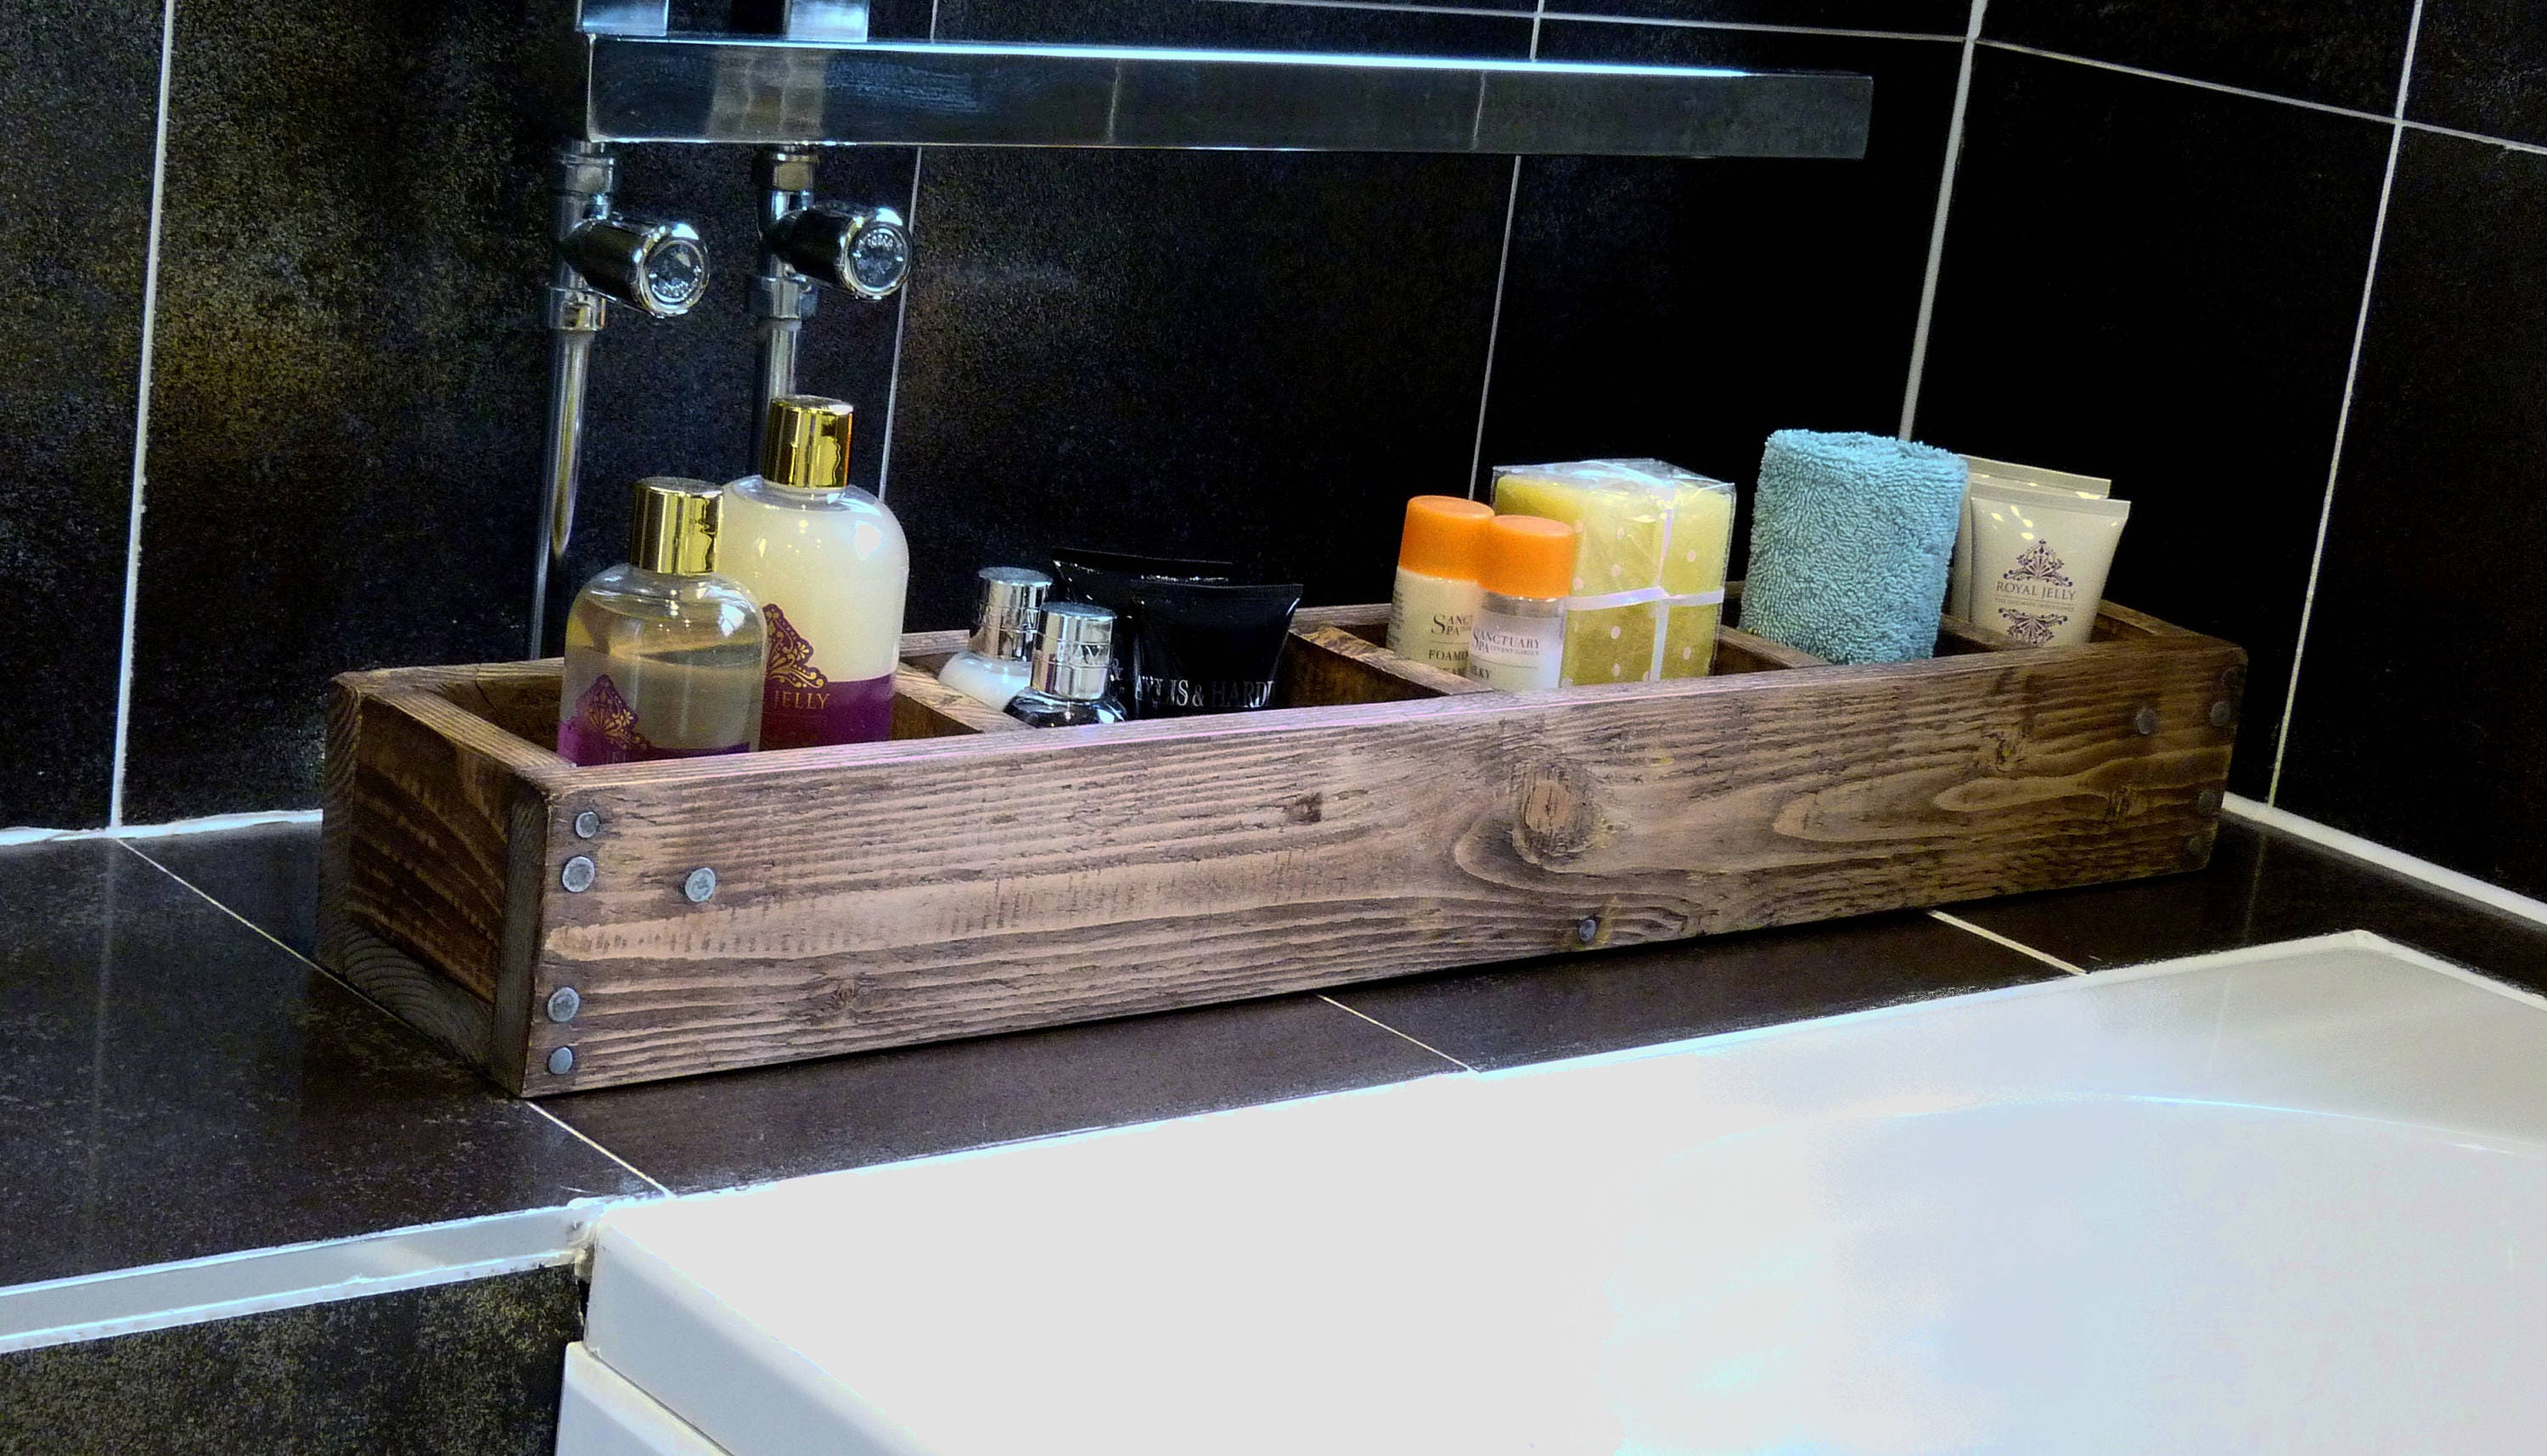 Bath caddy  organiser  dining room  kitchen organiser  table setting  reclaimed wood  rustic